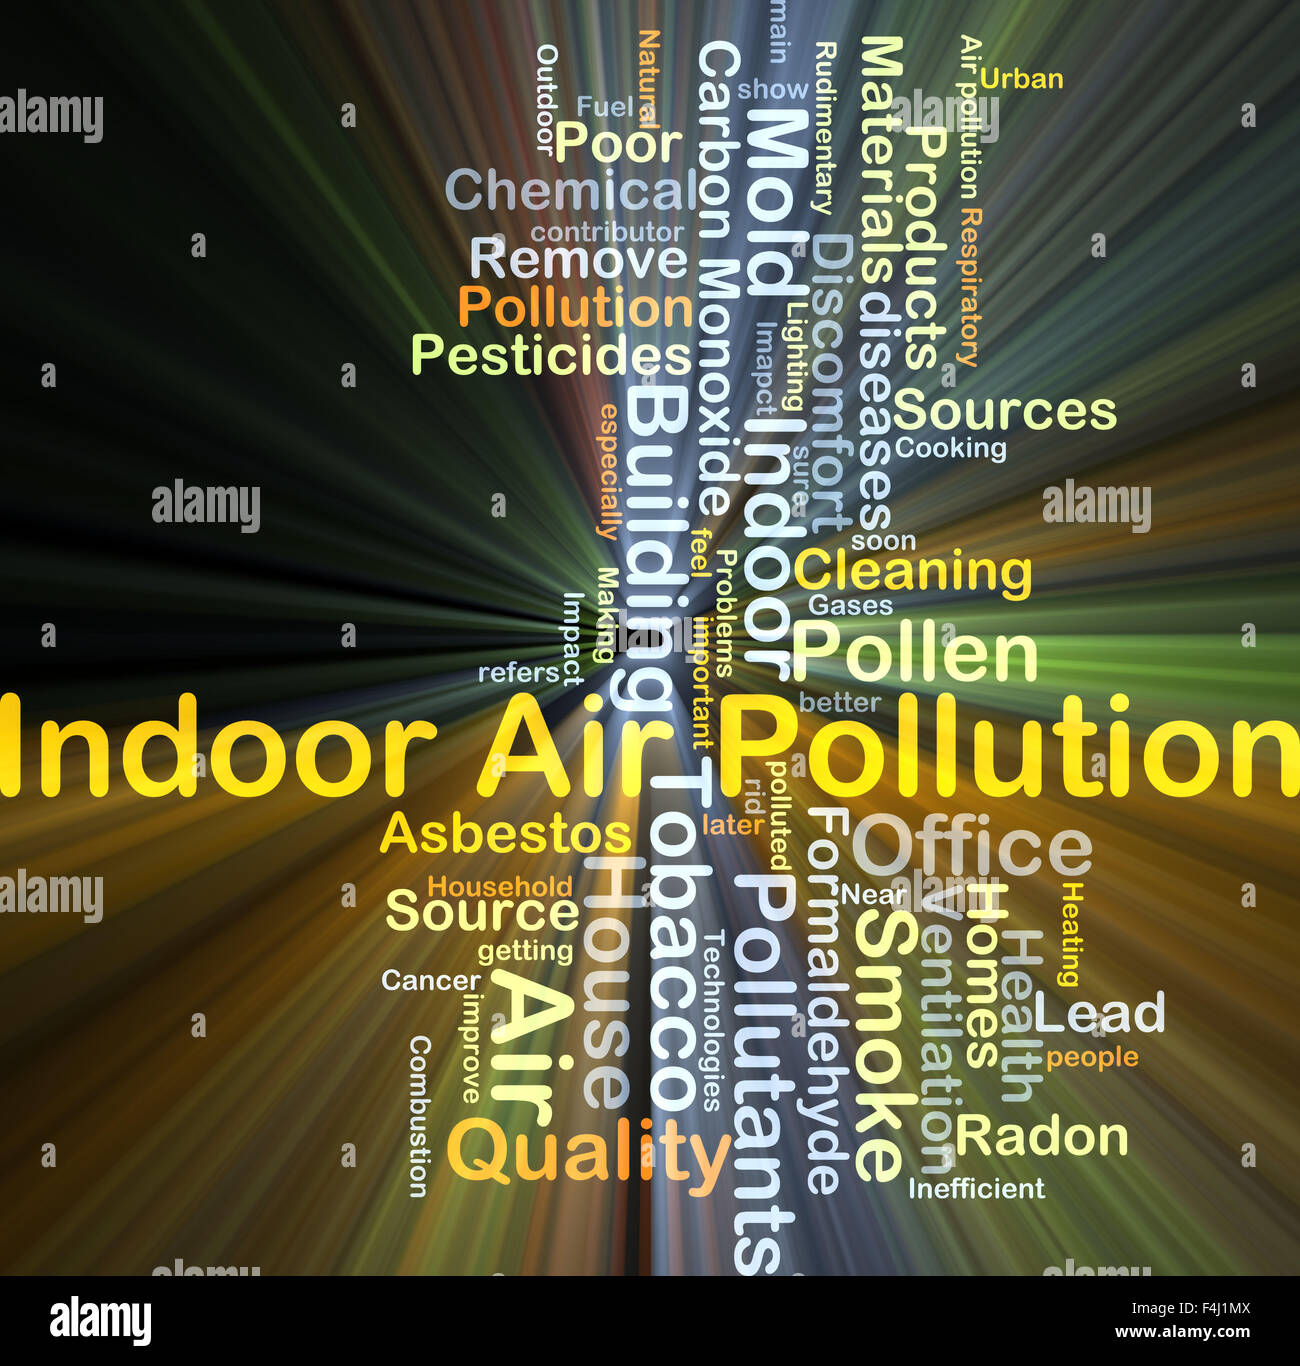 Background Concept Wordcloud Illustration Of Indoor Air Pollution Glowing  Light Stock Photo - Alamy